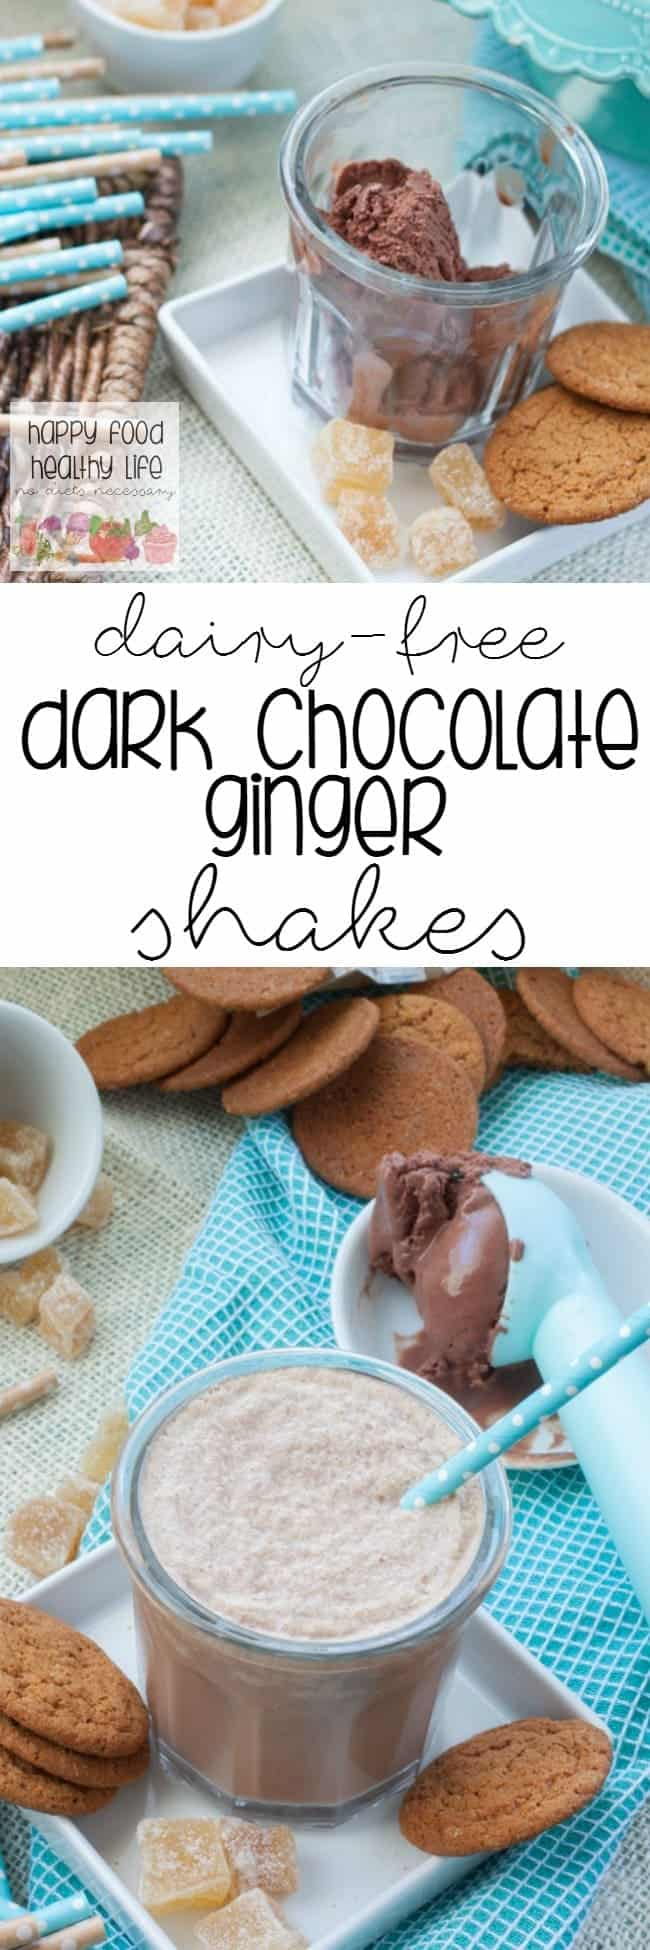 Dairy-Free Dark Chocolate Ginger Snap Shakes - a delicious chocolatey treat that has a kick of gingery spice. Only 4 ingredients! Oh, and it's dairy-free too!